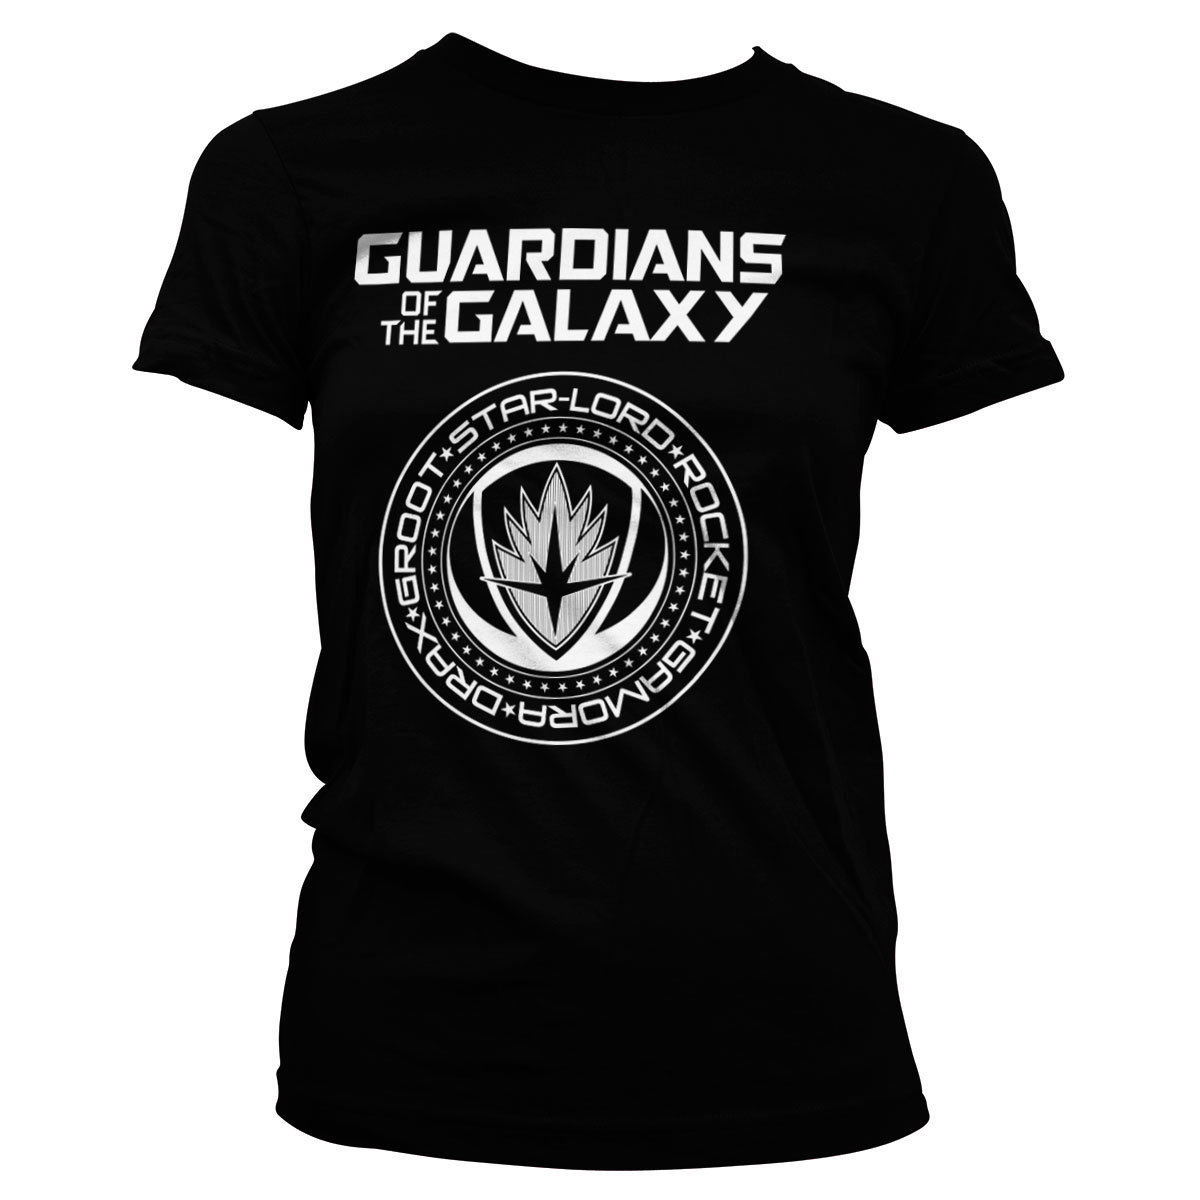 Guardians of The Galaxy Shield Women T-Shirt S-XL Sizes High Quality 100 % Cotton 2018 Brand Clothing Harajuku T Shirt